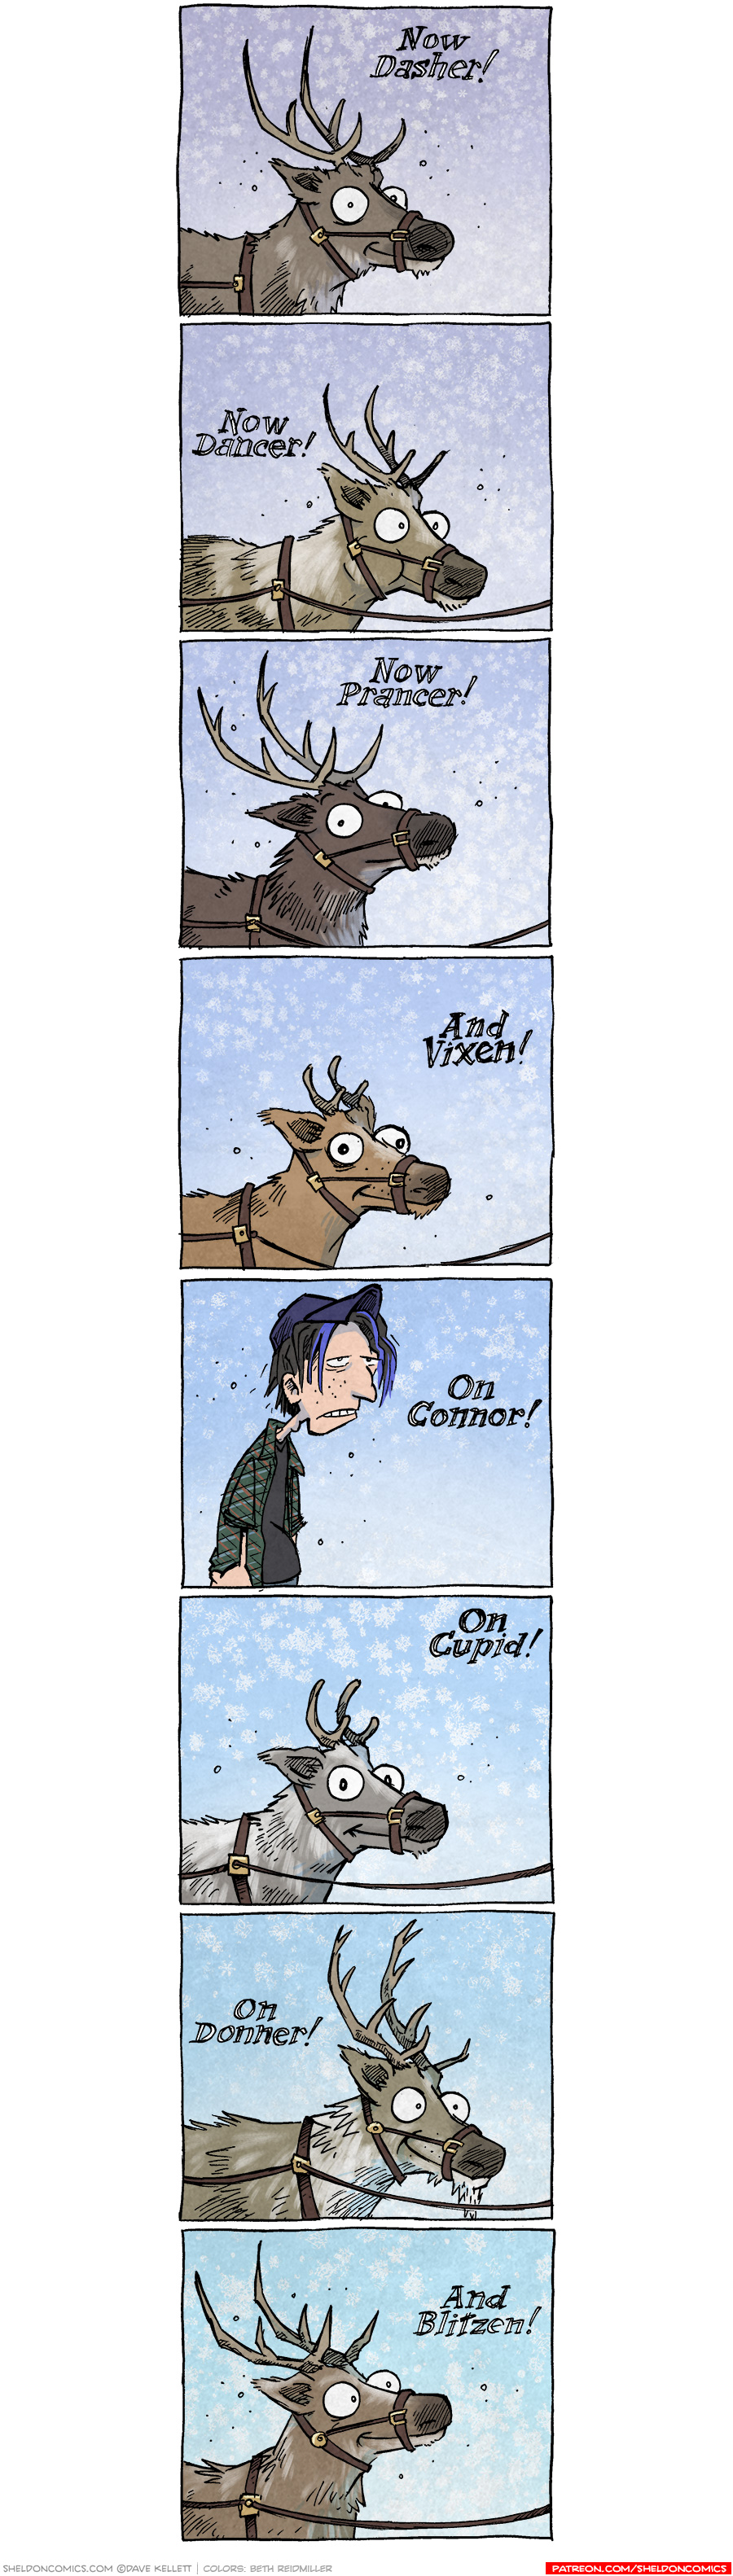 strip for December / 18 / 2020 - 8 Teen-y Reindeer